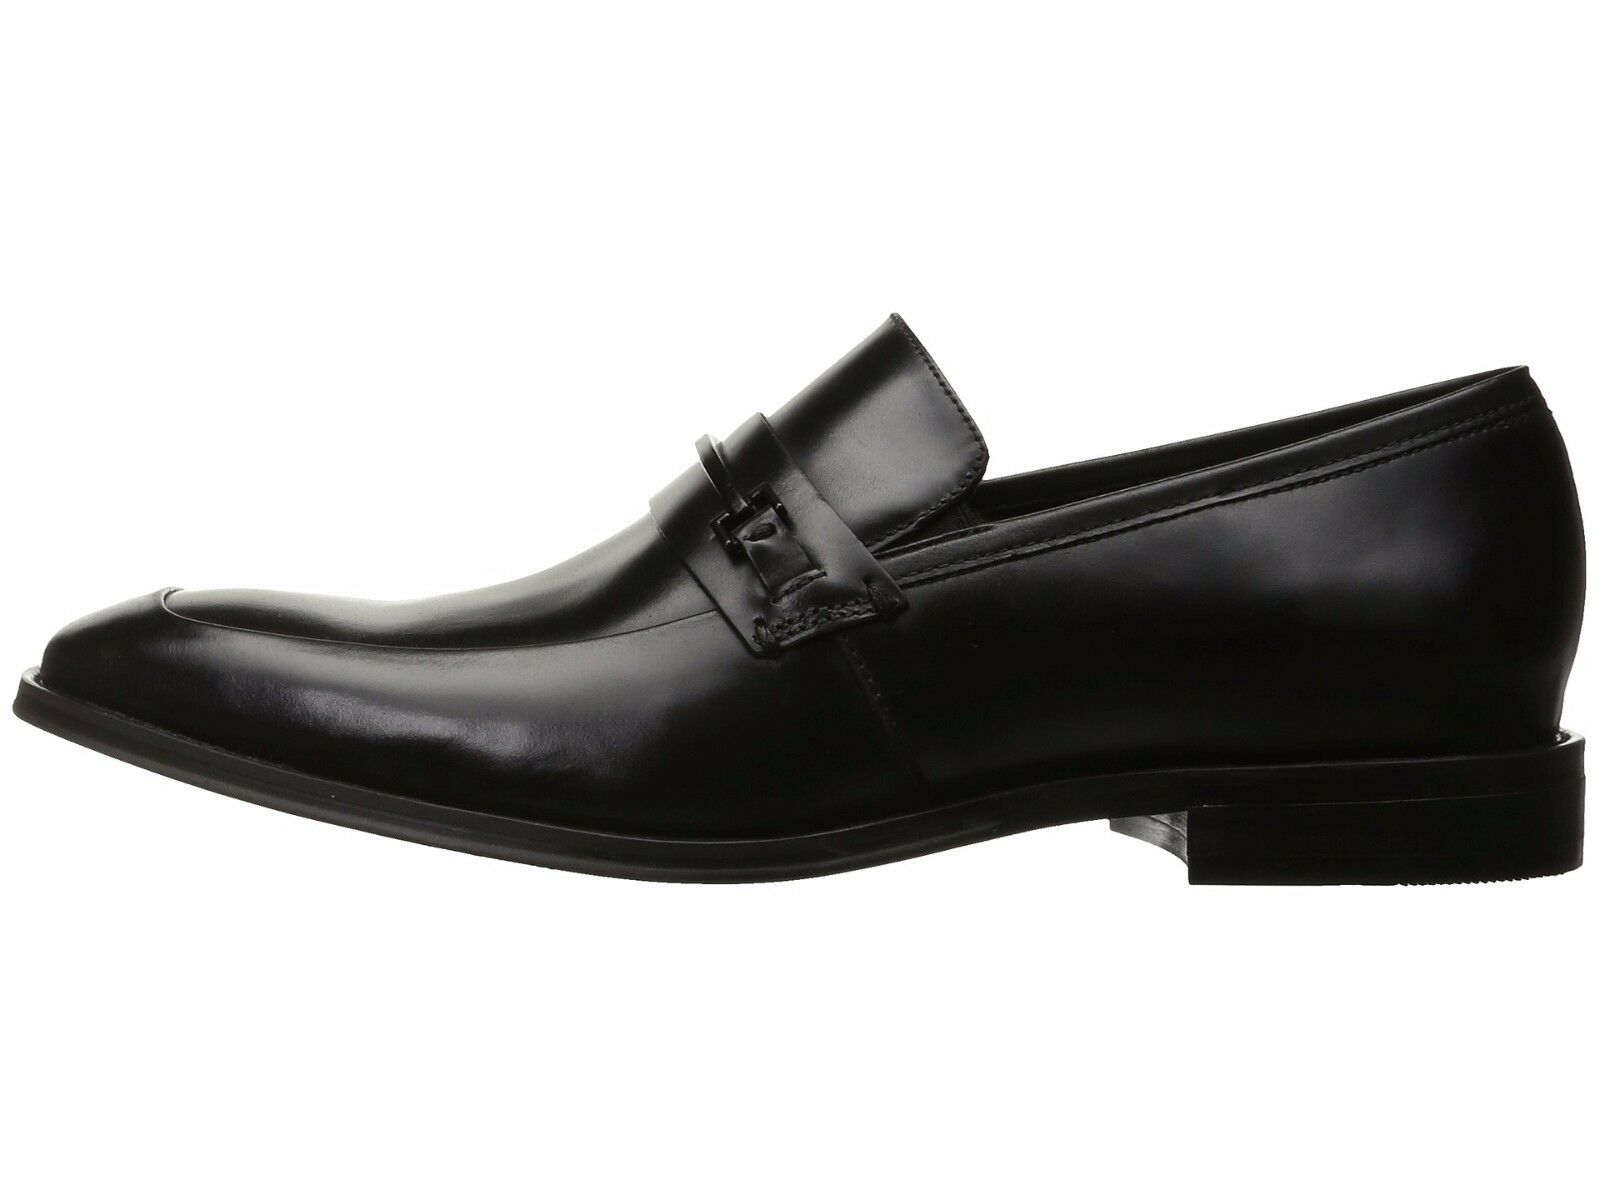 Scarpe casual da uomo  Kenneth Cole New York uomos North Shore Bit Business Casual Loafers Dress Shoes